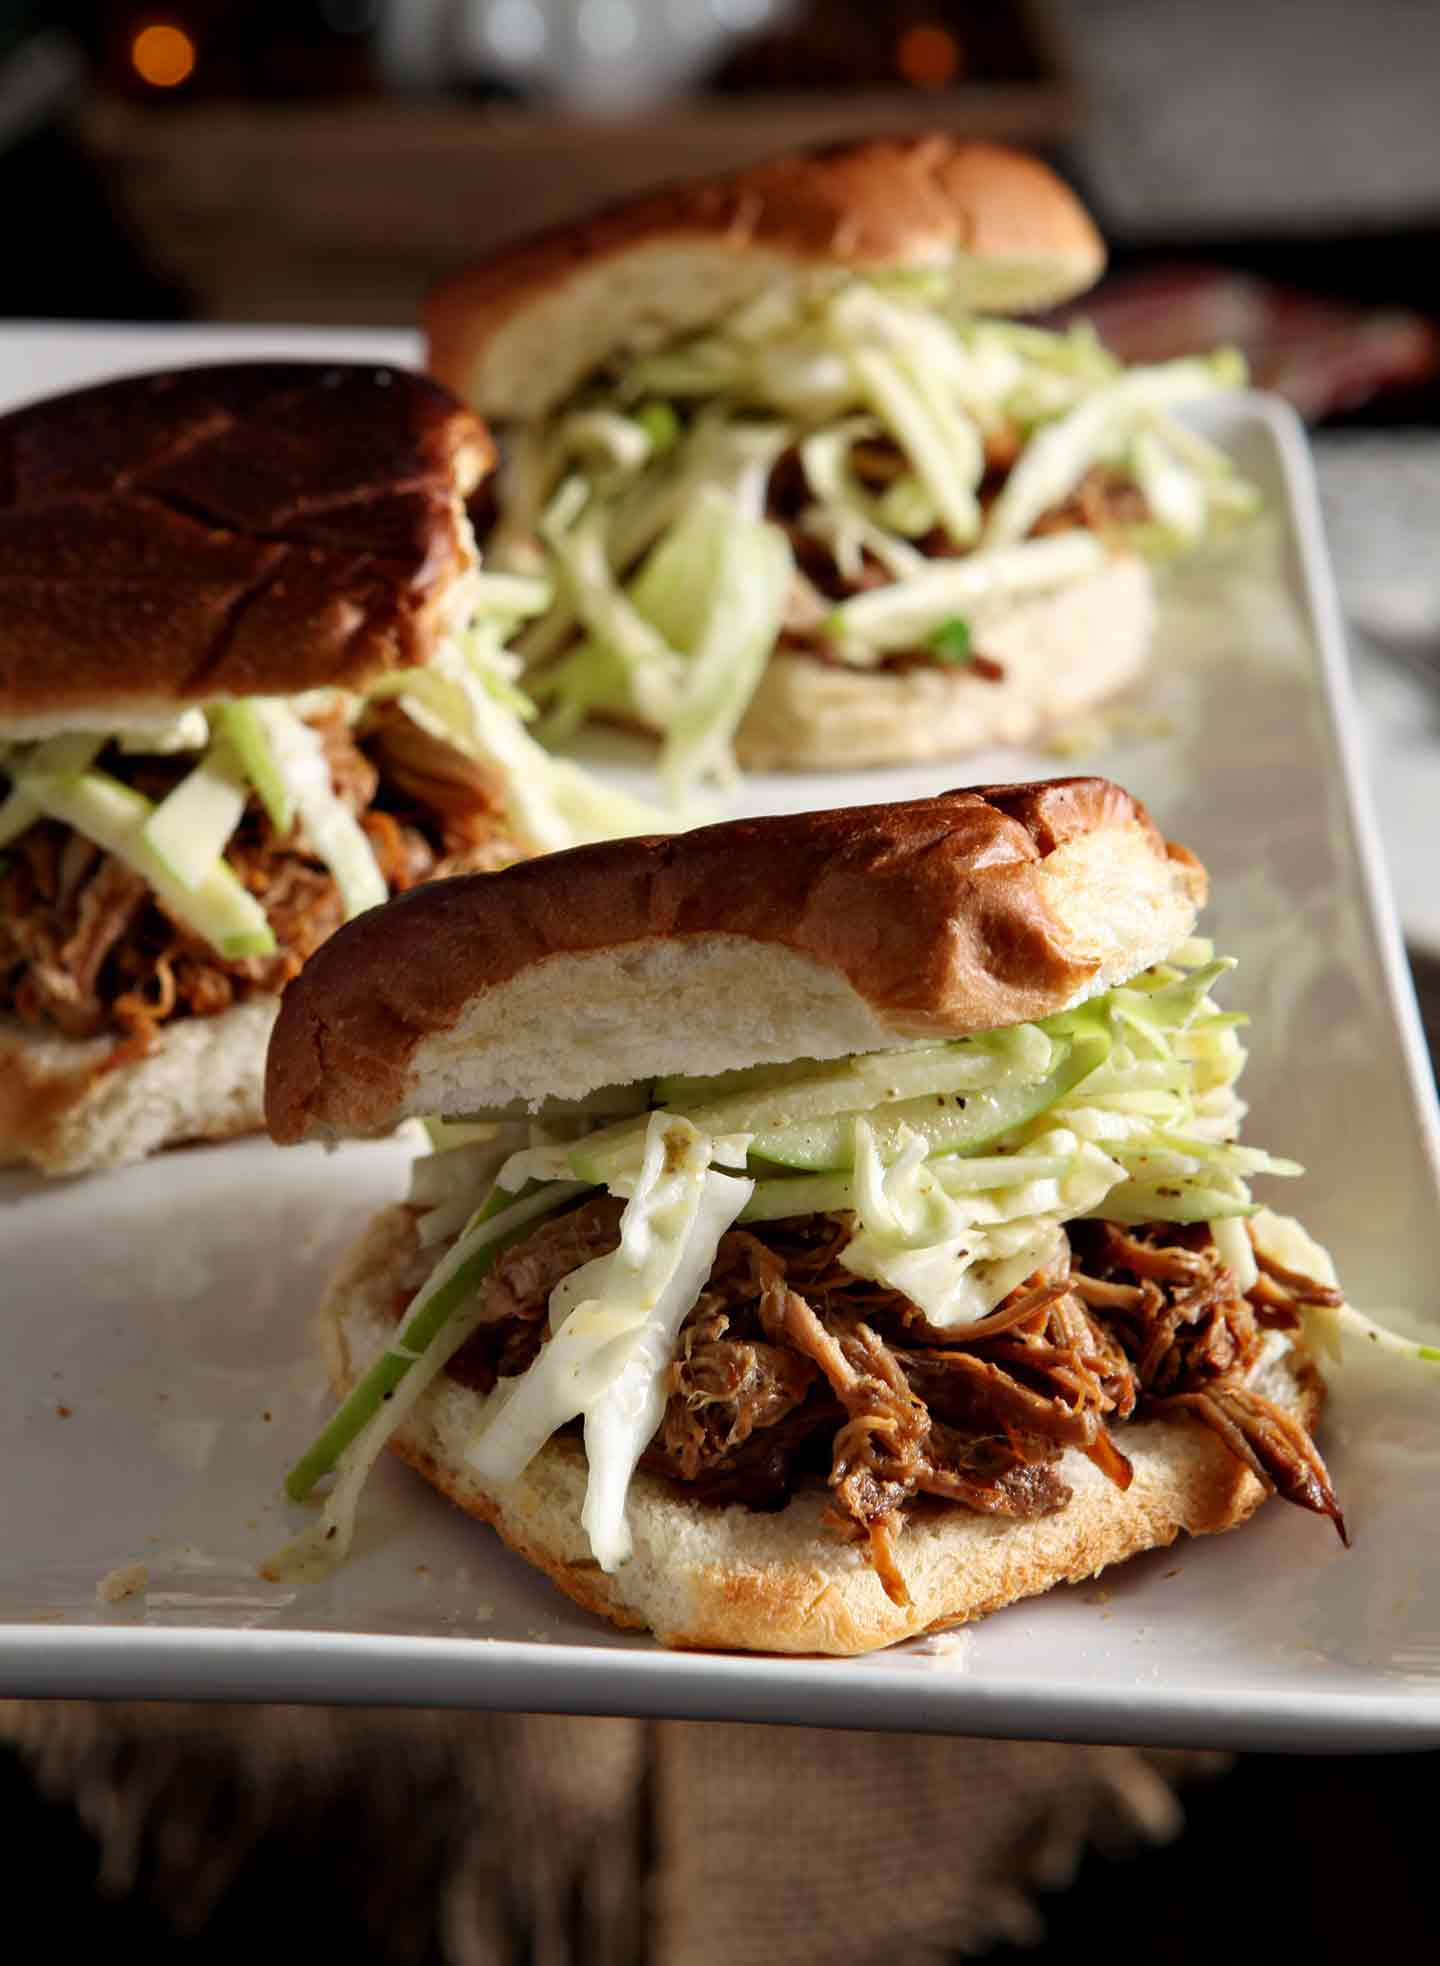 Three Apple Cider Pulled Pork with Apple Cabbage Slaw are served on buns on a white platter